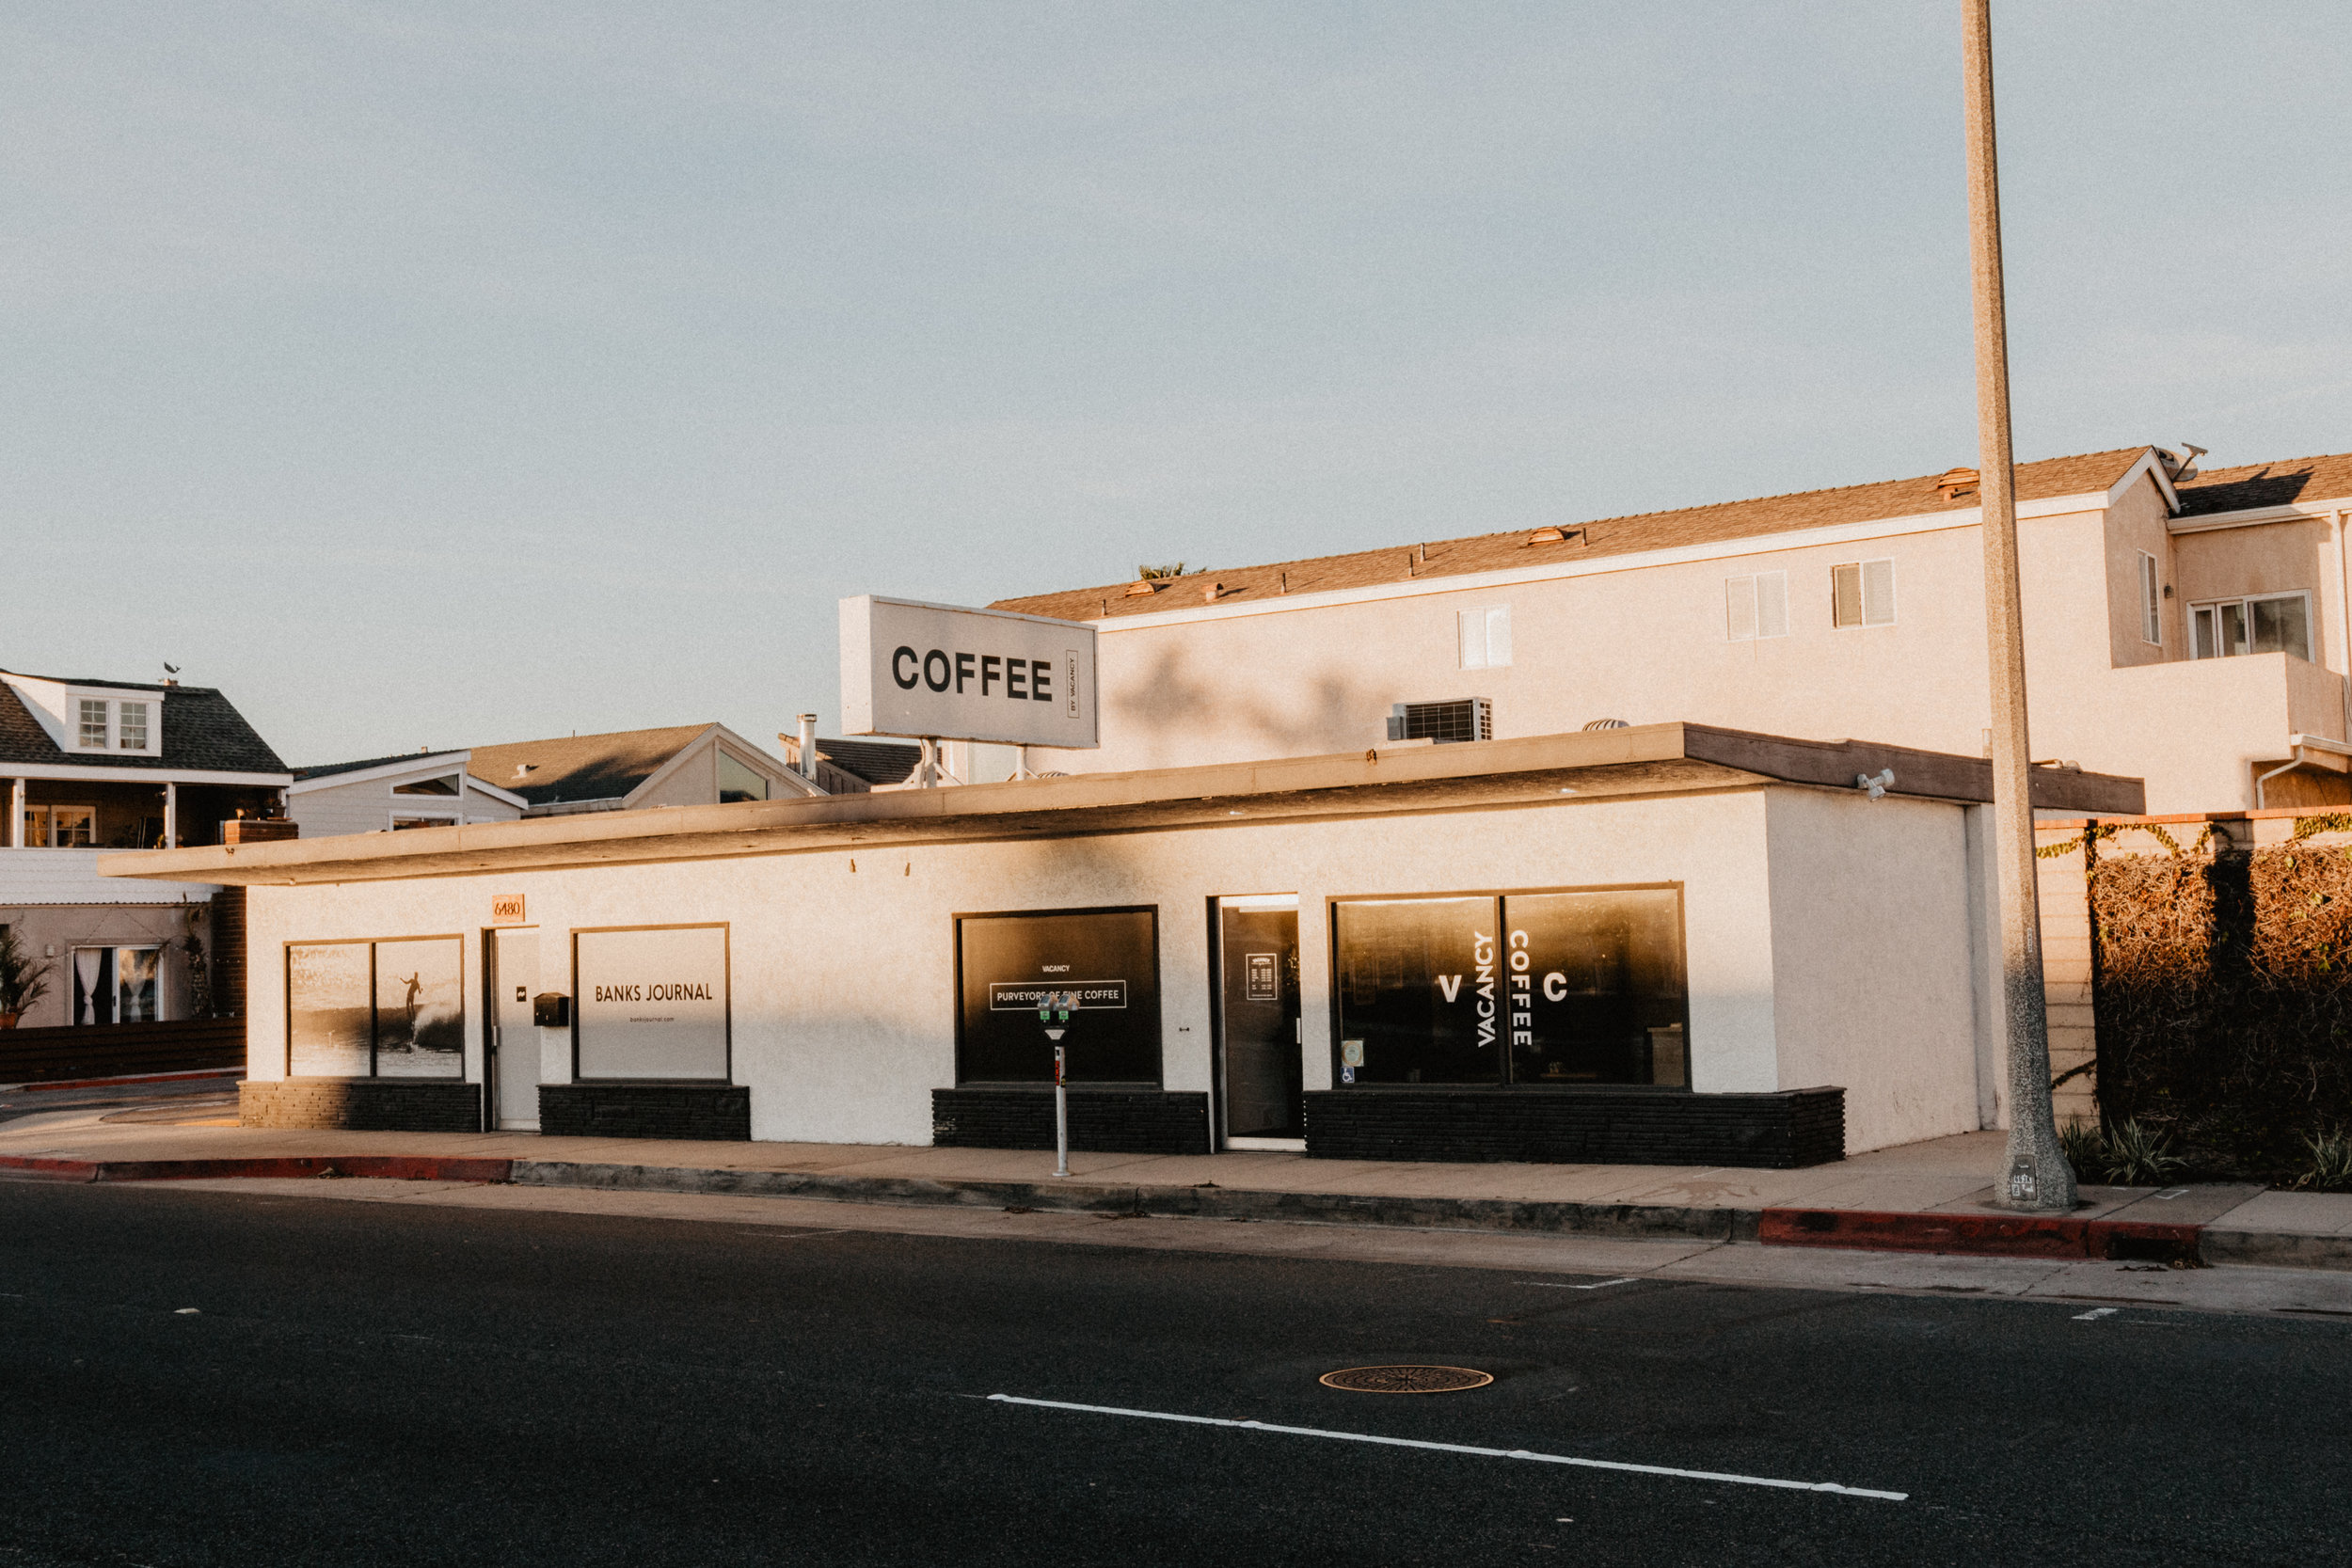 Welcome to Vacancy Coffee, located on PCH in Newport Beach